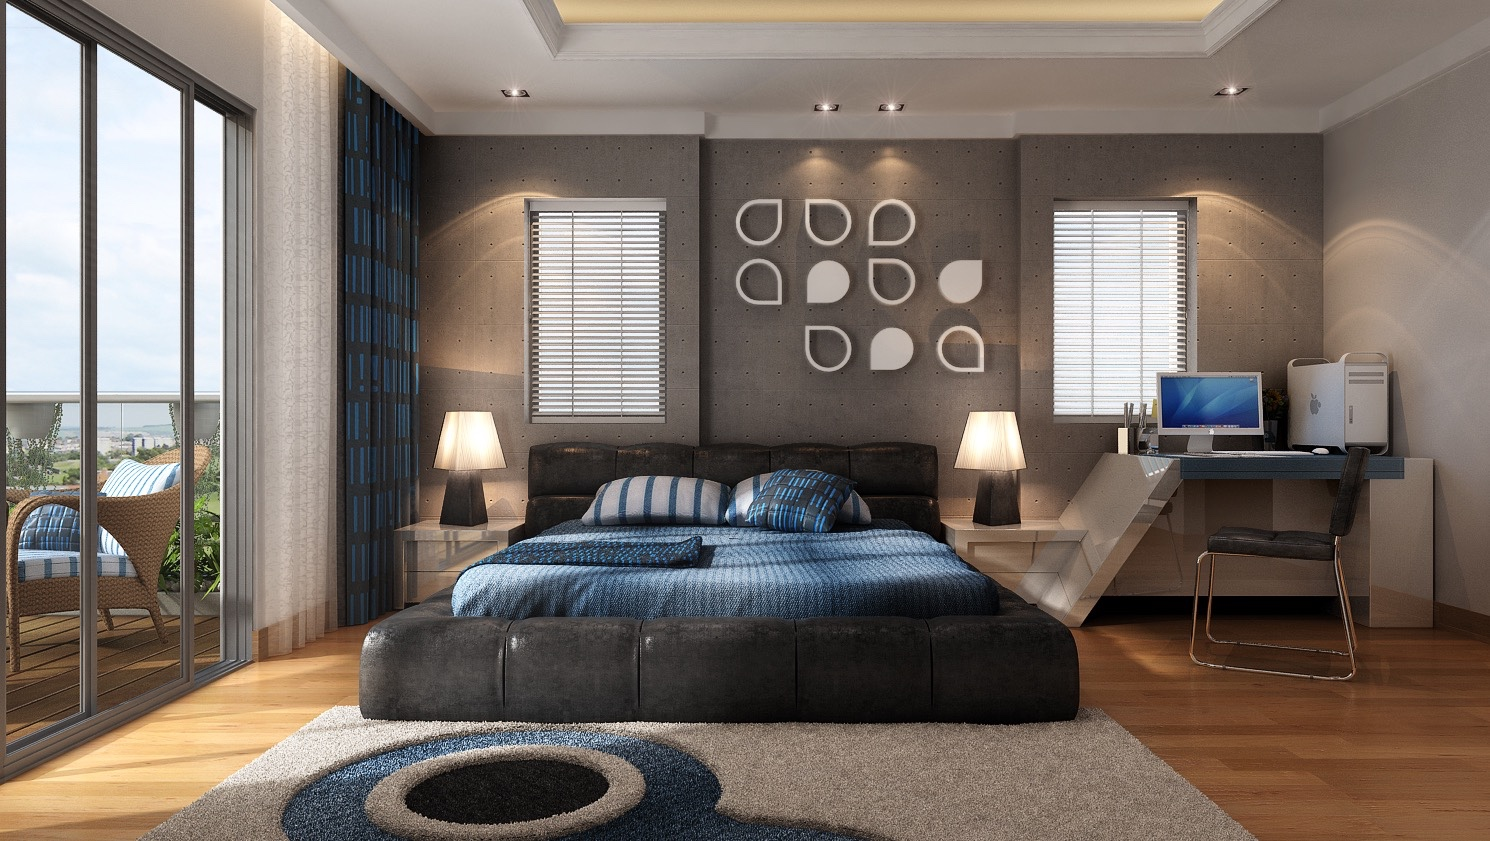 21 cool bedrooms for clean and simple design inspiration for Best bed designs images